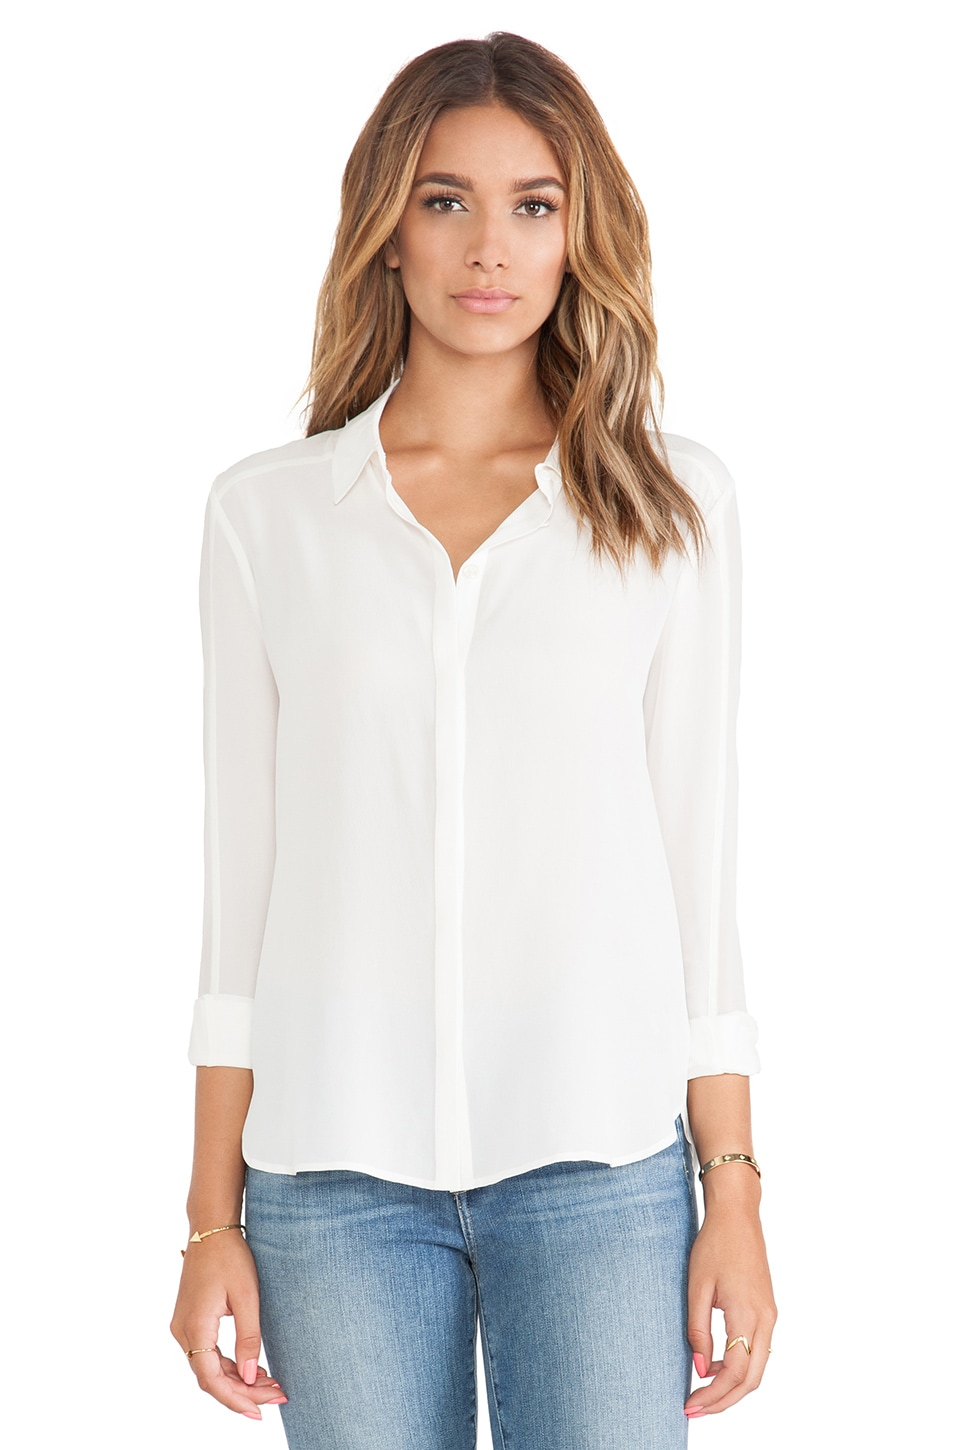 Paige Denim Tara Shirt in Antique White